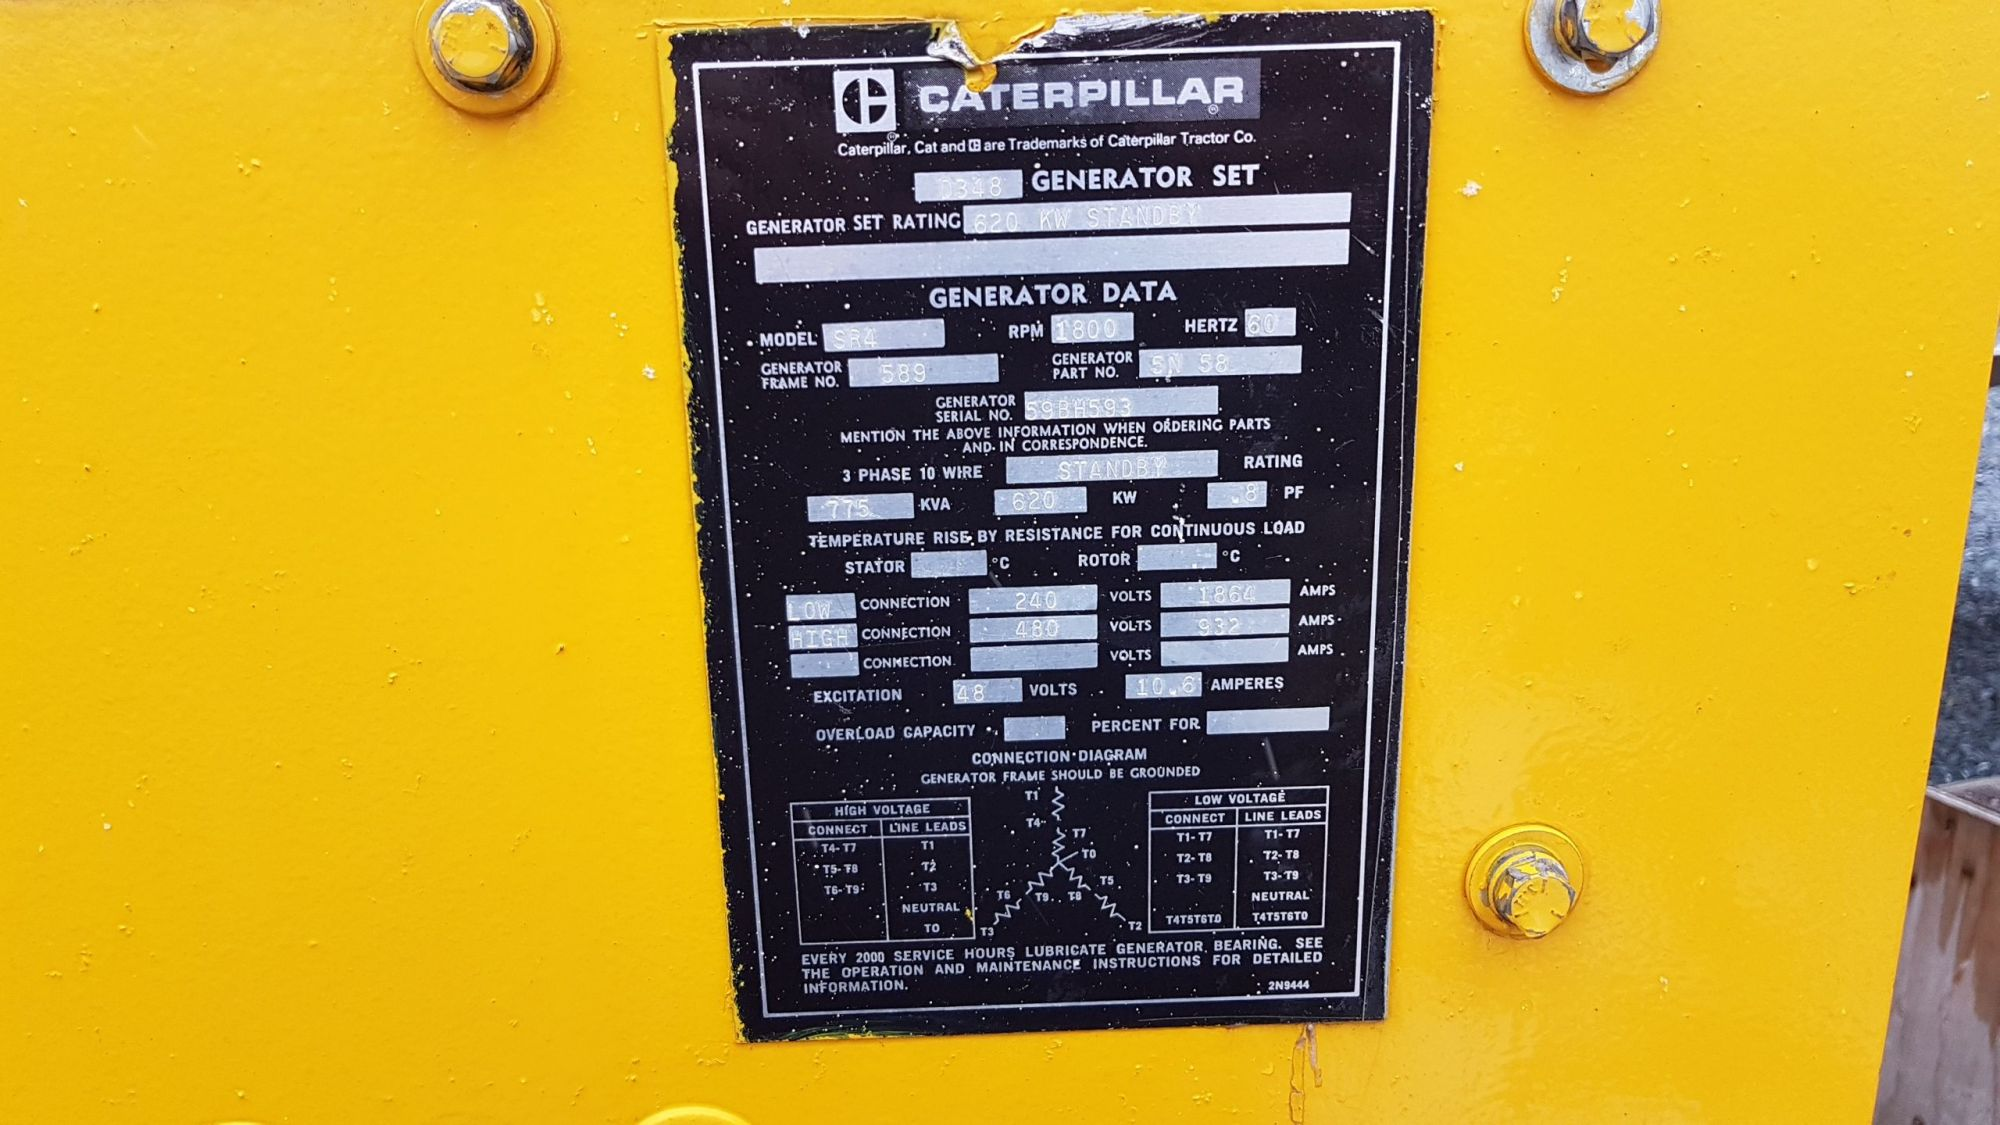 hight resolution of pre owned 775 kva generator d348 caterpillar set model sr4 for sale